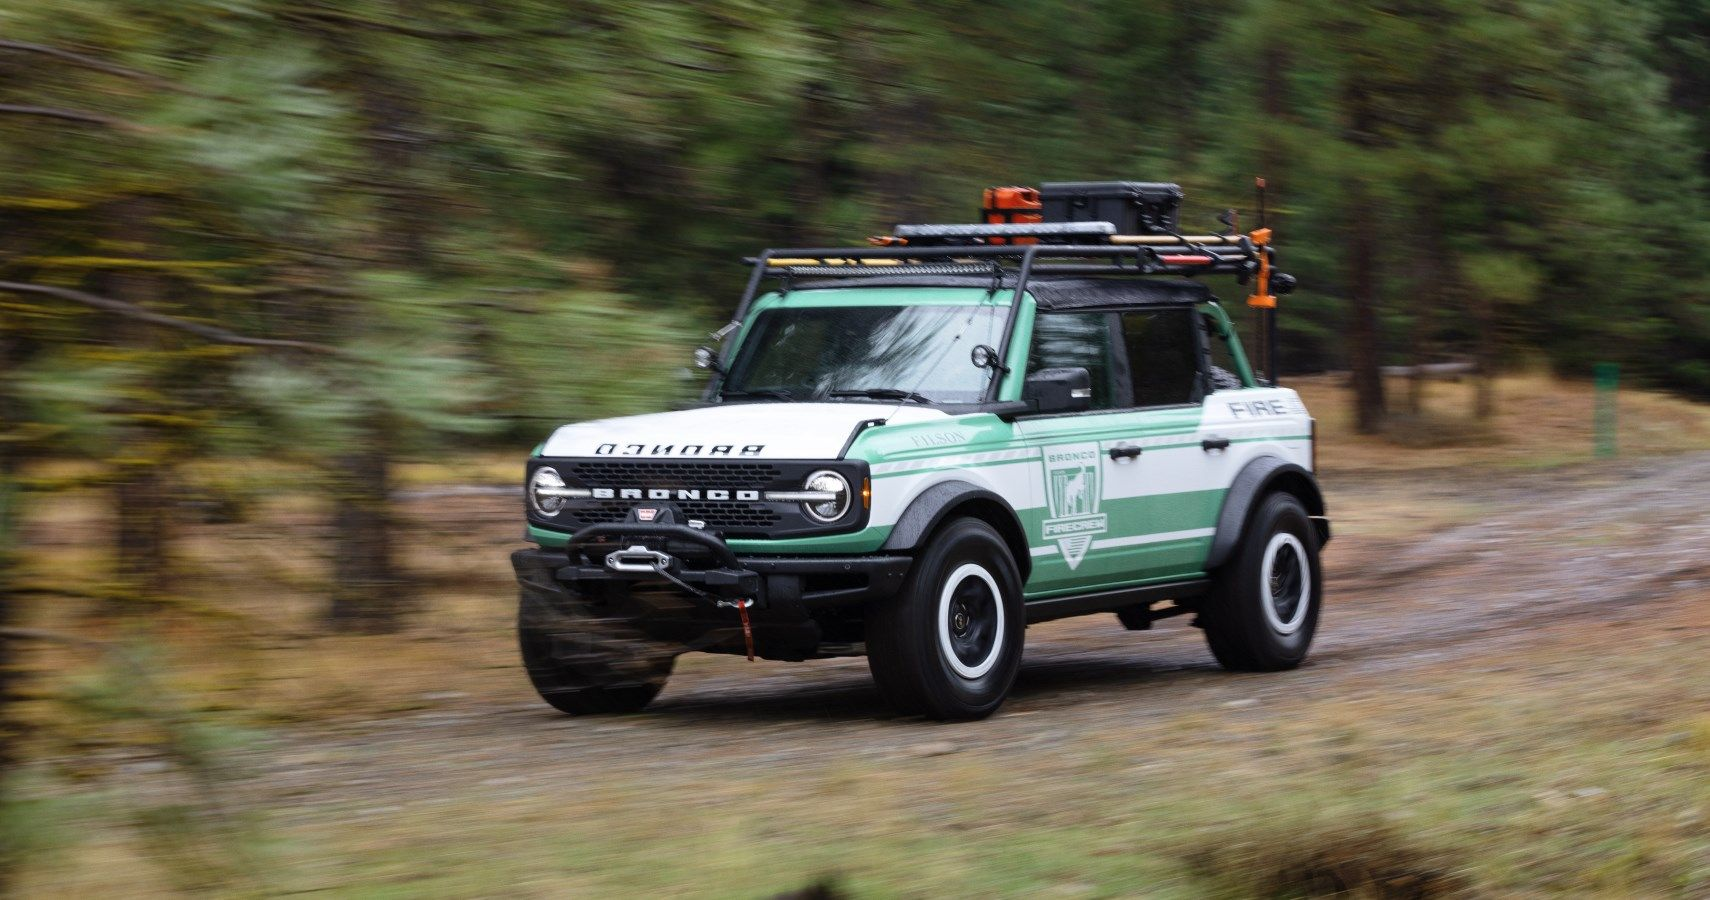 Ford's New Bronco Concept Is A Rugged Firefighting Rig | HotCars